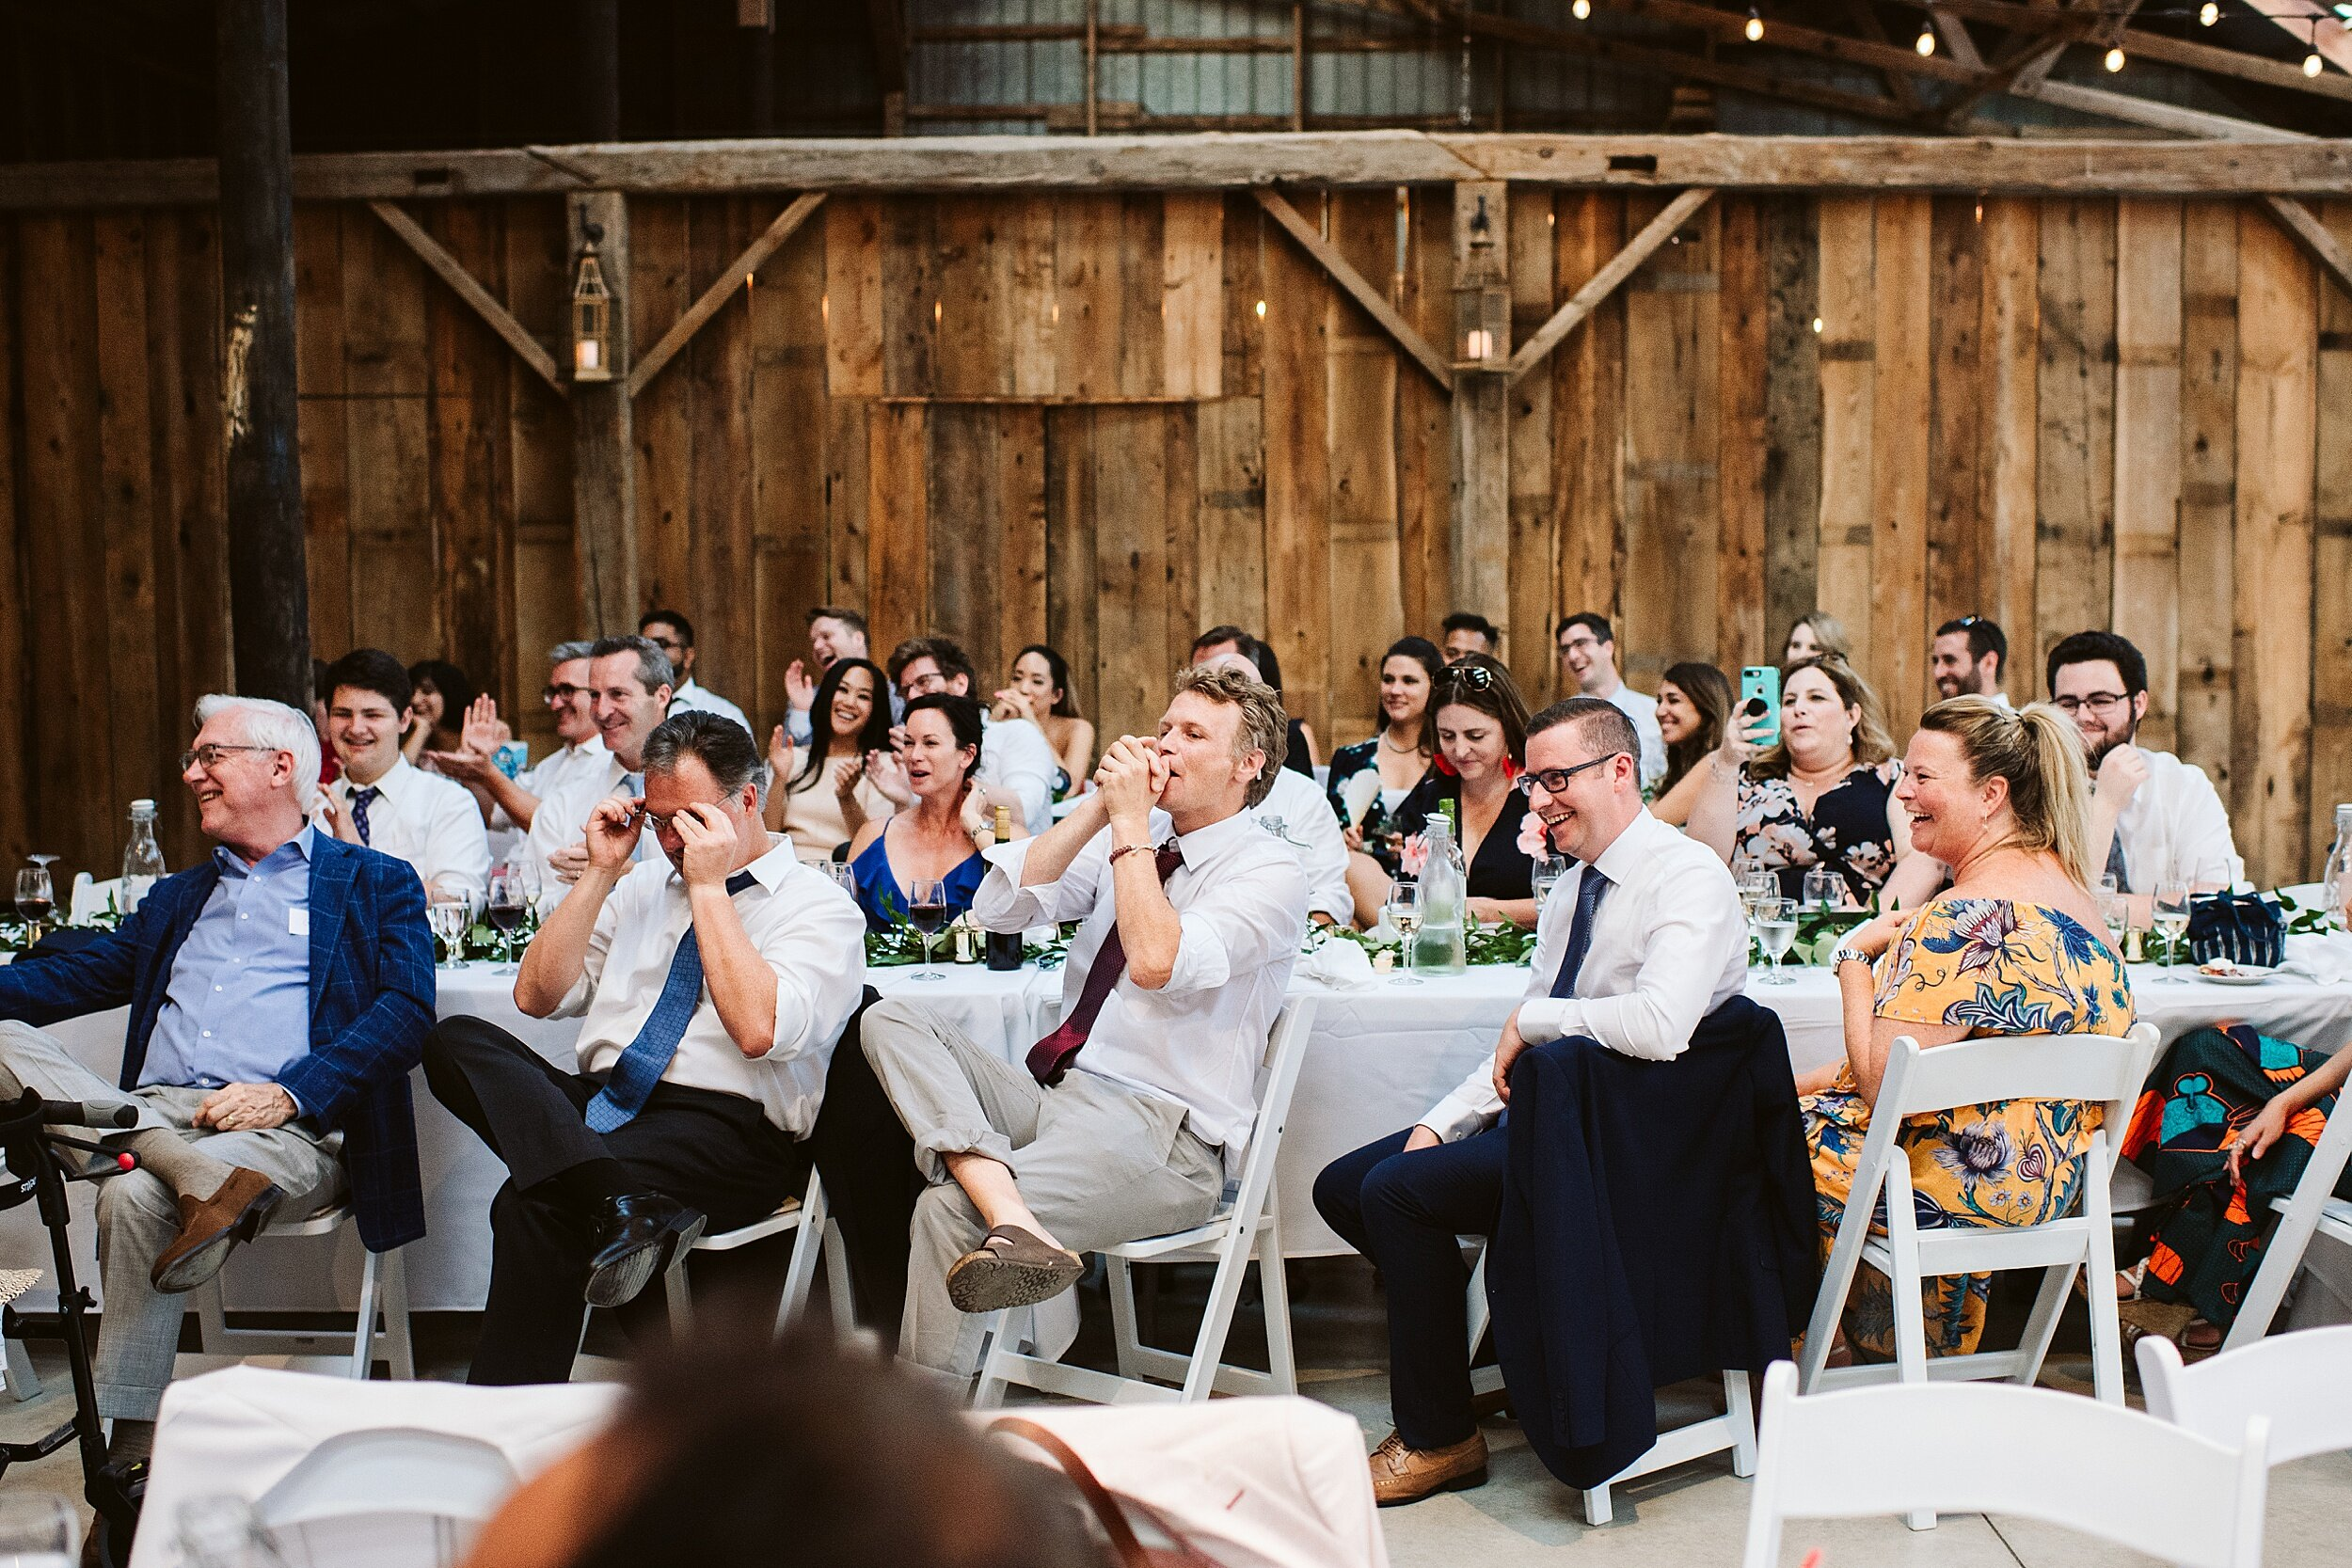 Glen_Drummon_Farm_Wedding_Toronto_Photographers_Fox_Photography_Dyments_0089.jpg